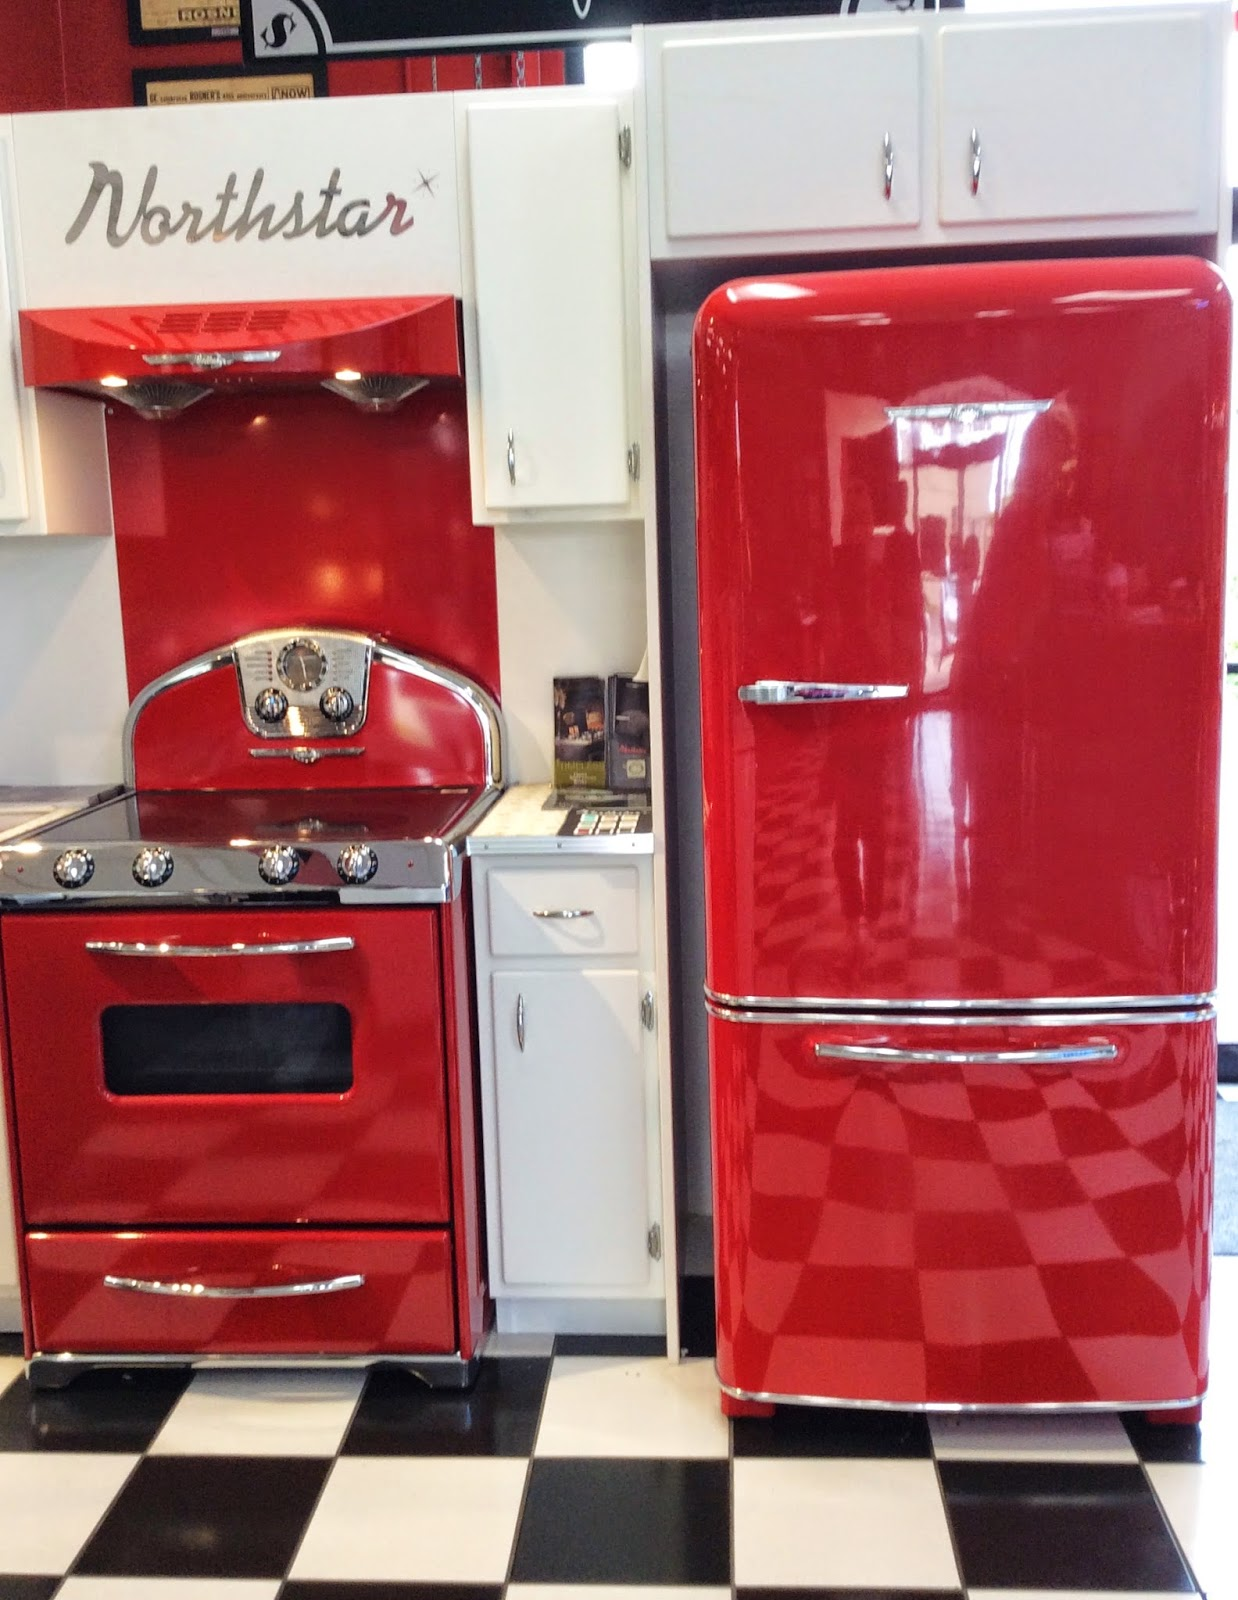 These Red Vintage Style Liances Are Showstoppers The Black And White Tile Just Adds To Retroness